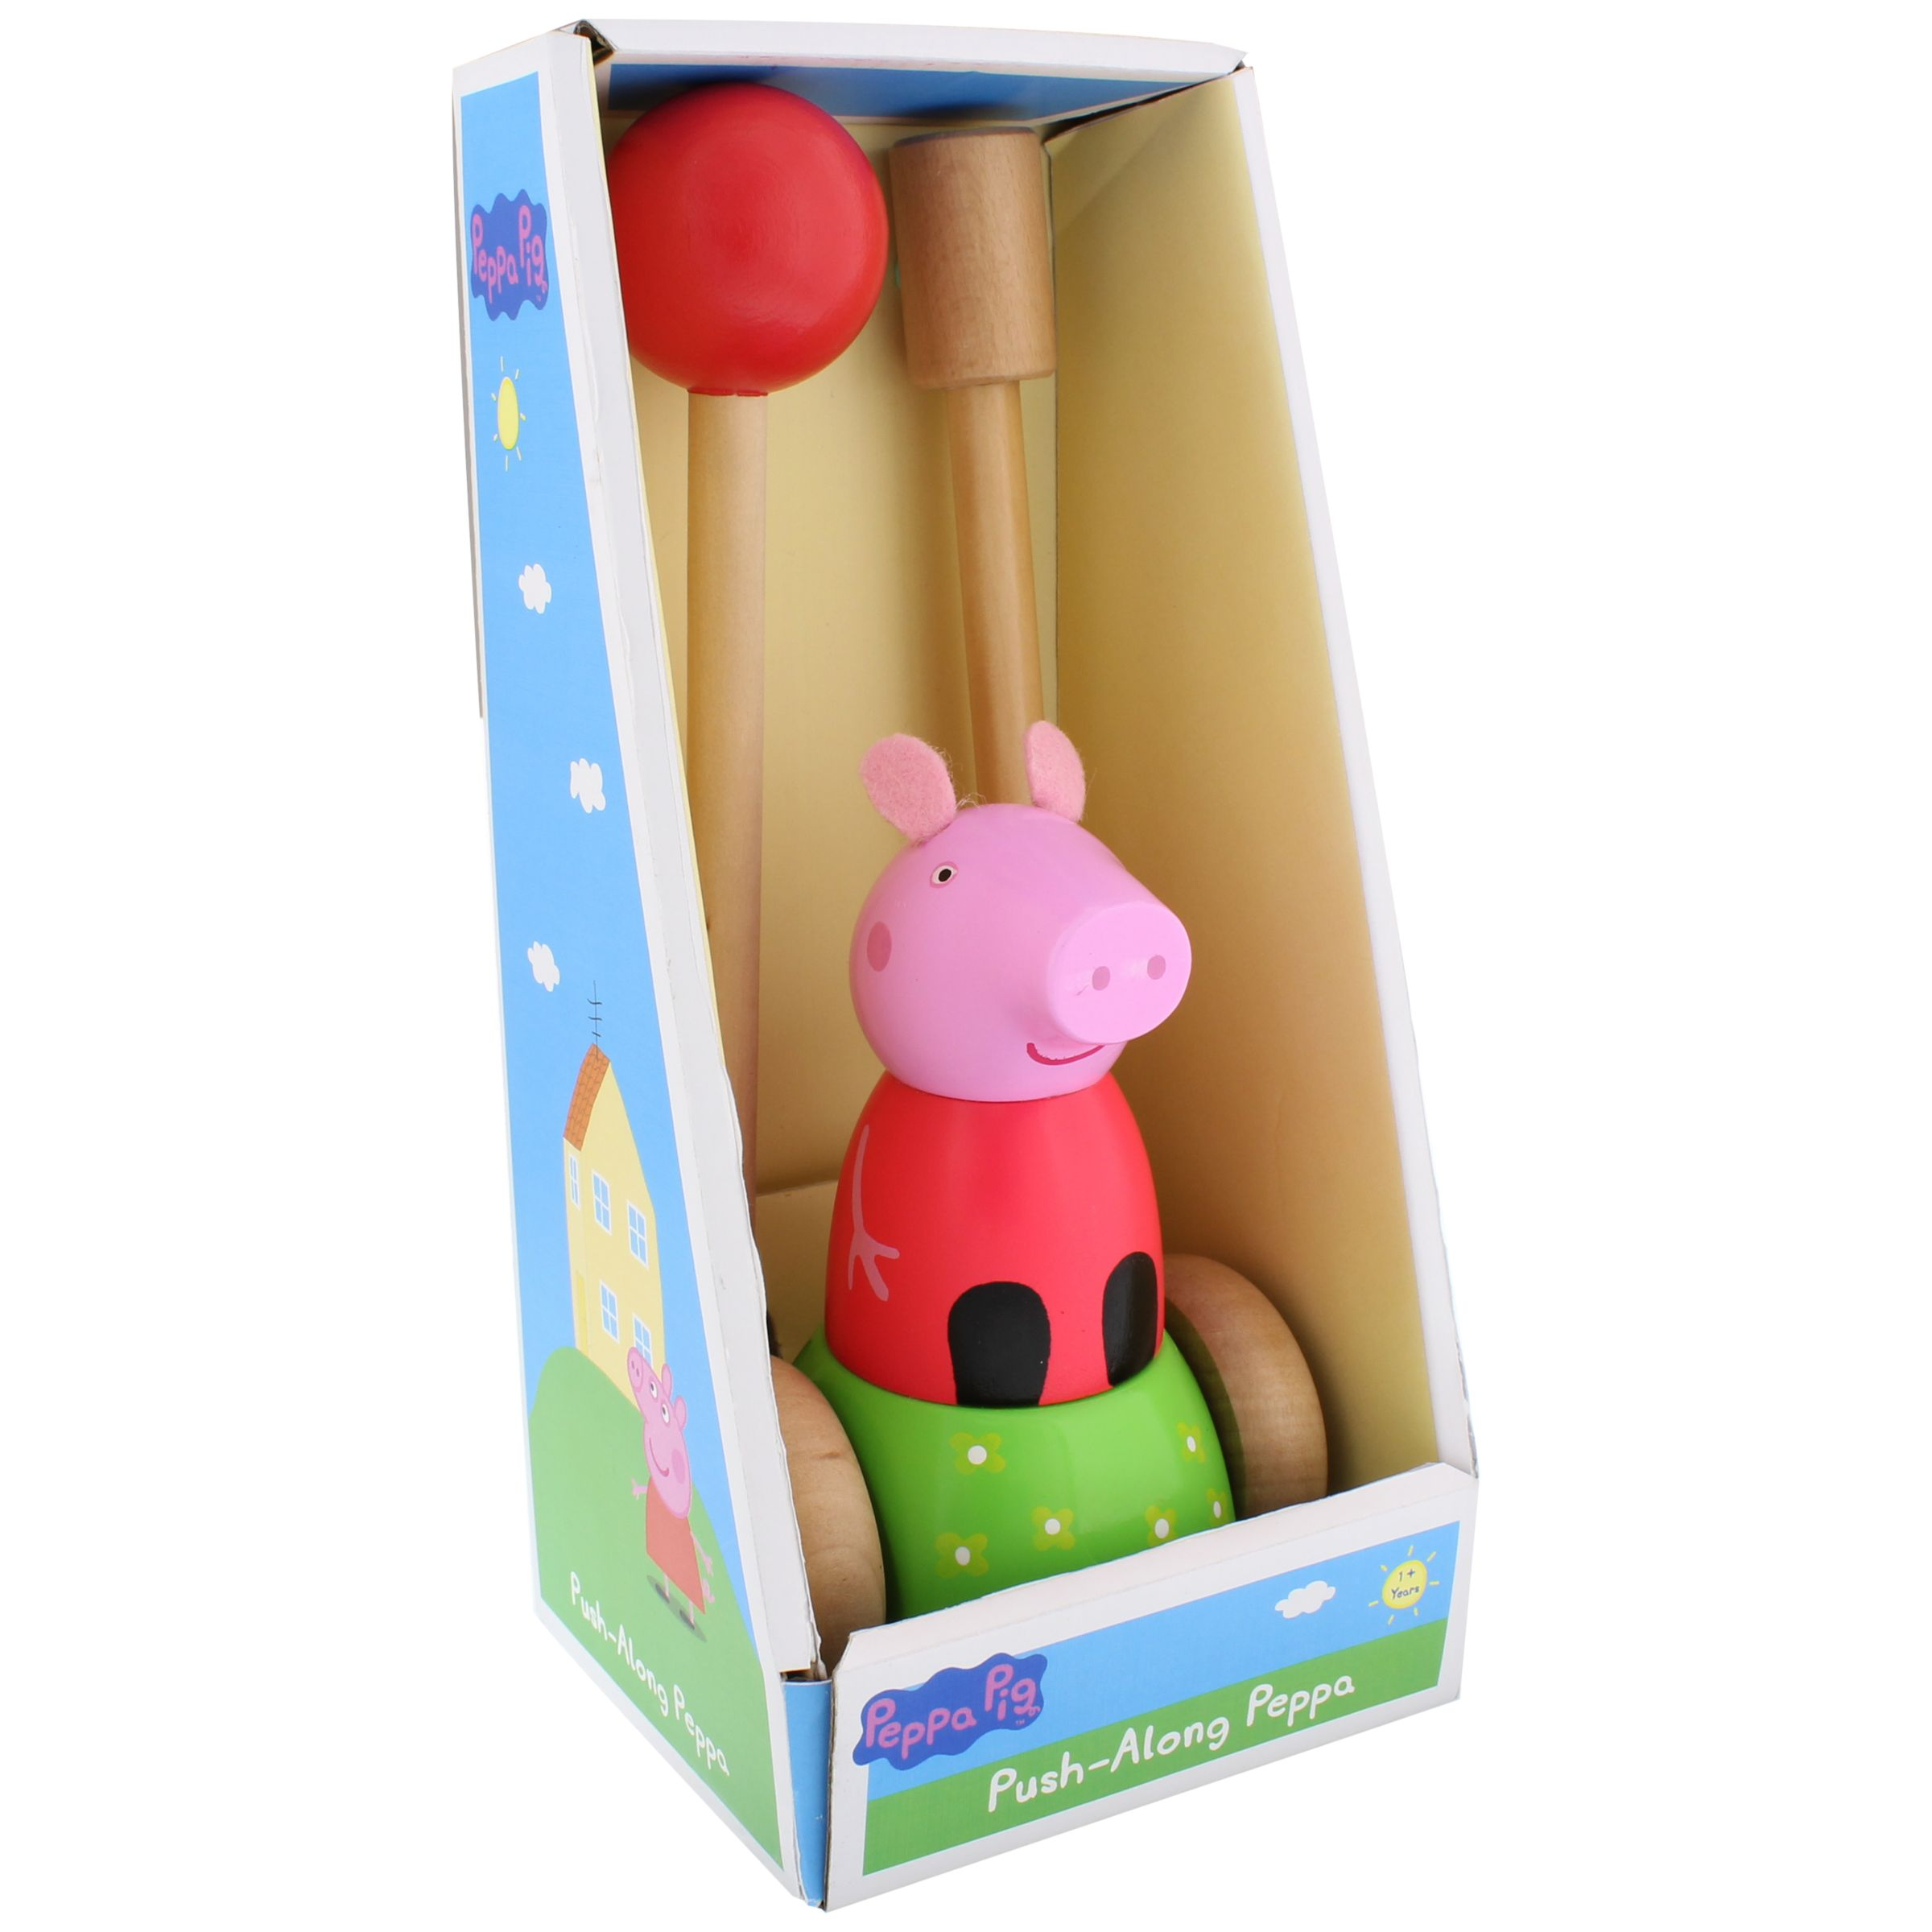 Peppa Pig Peppa Pig Wooden Push Along Peppa